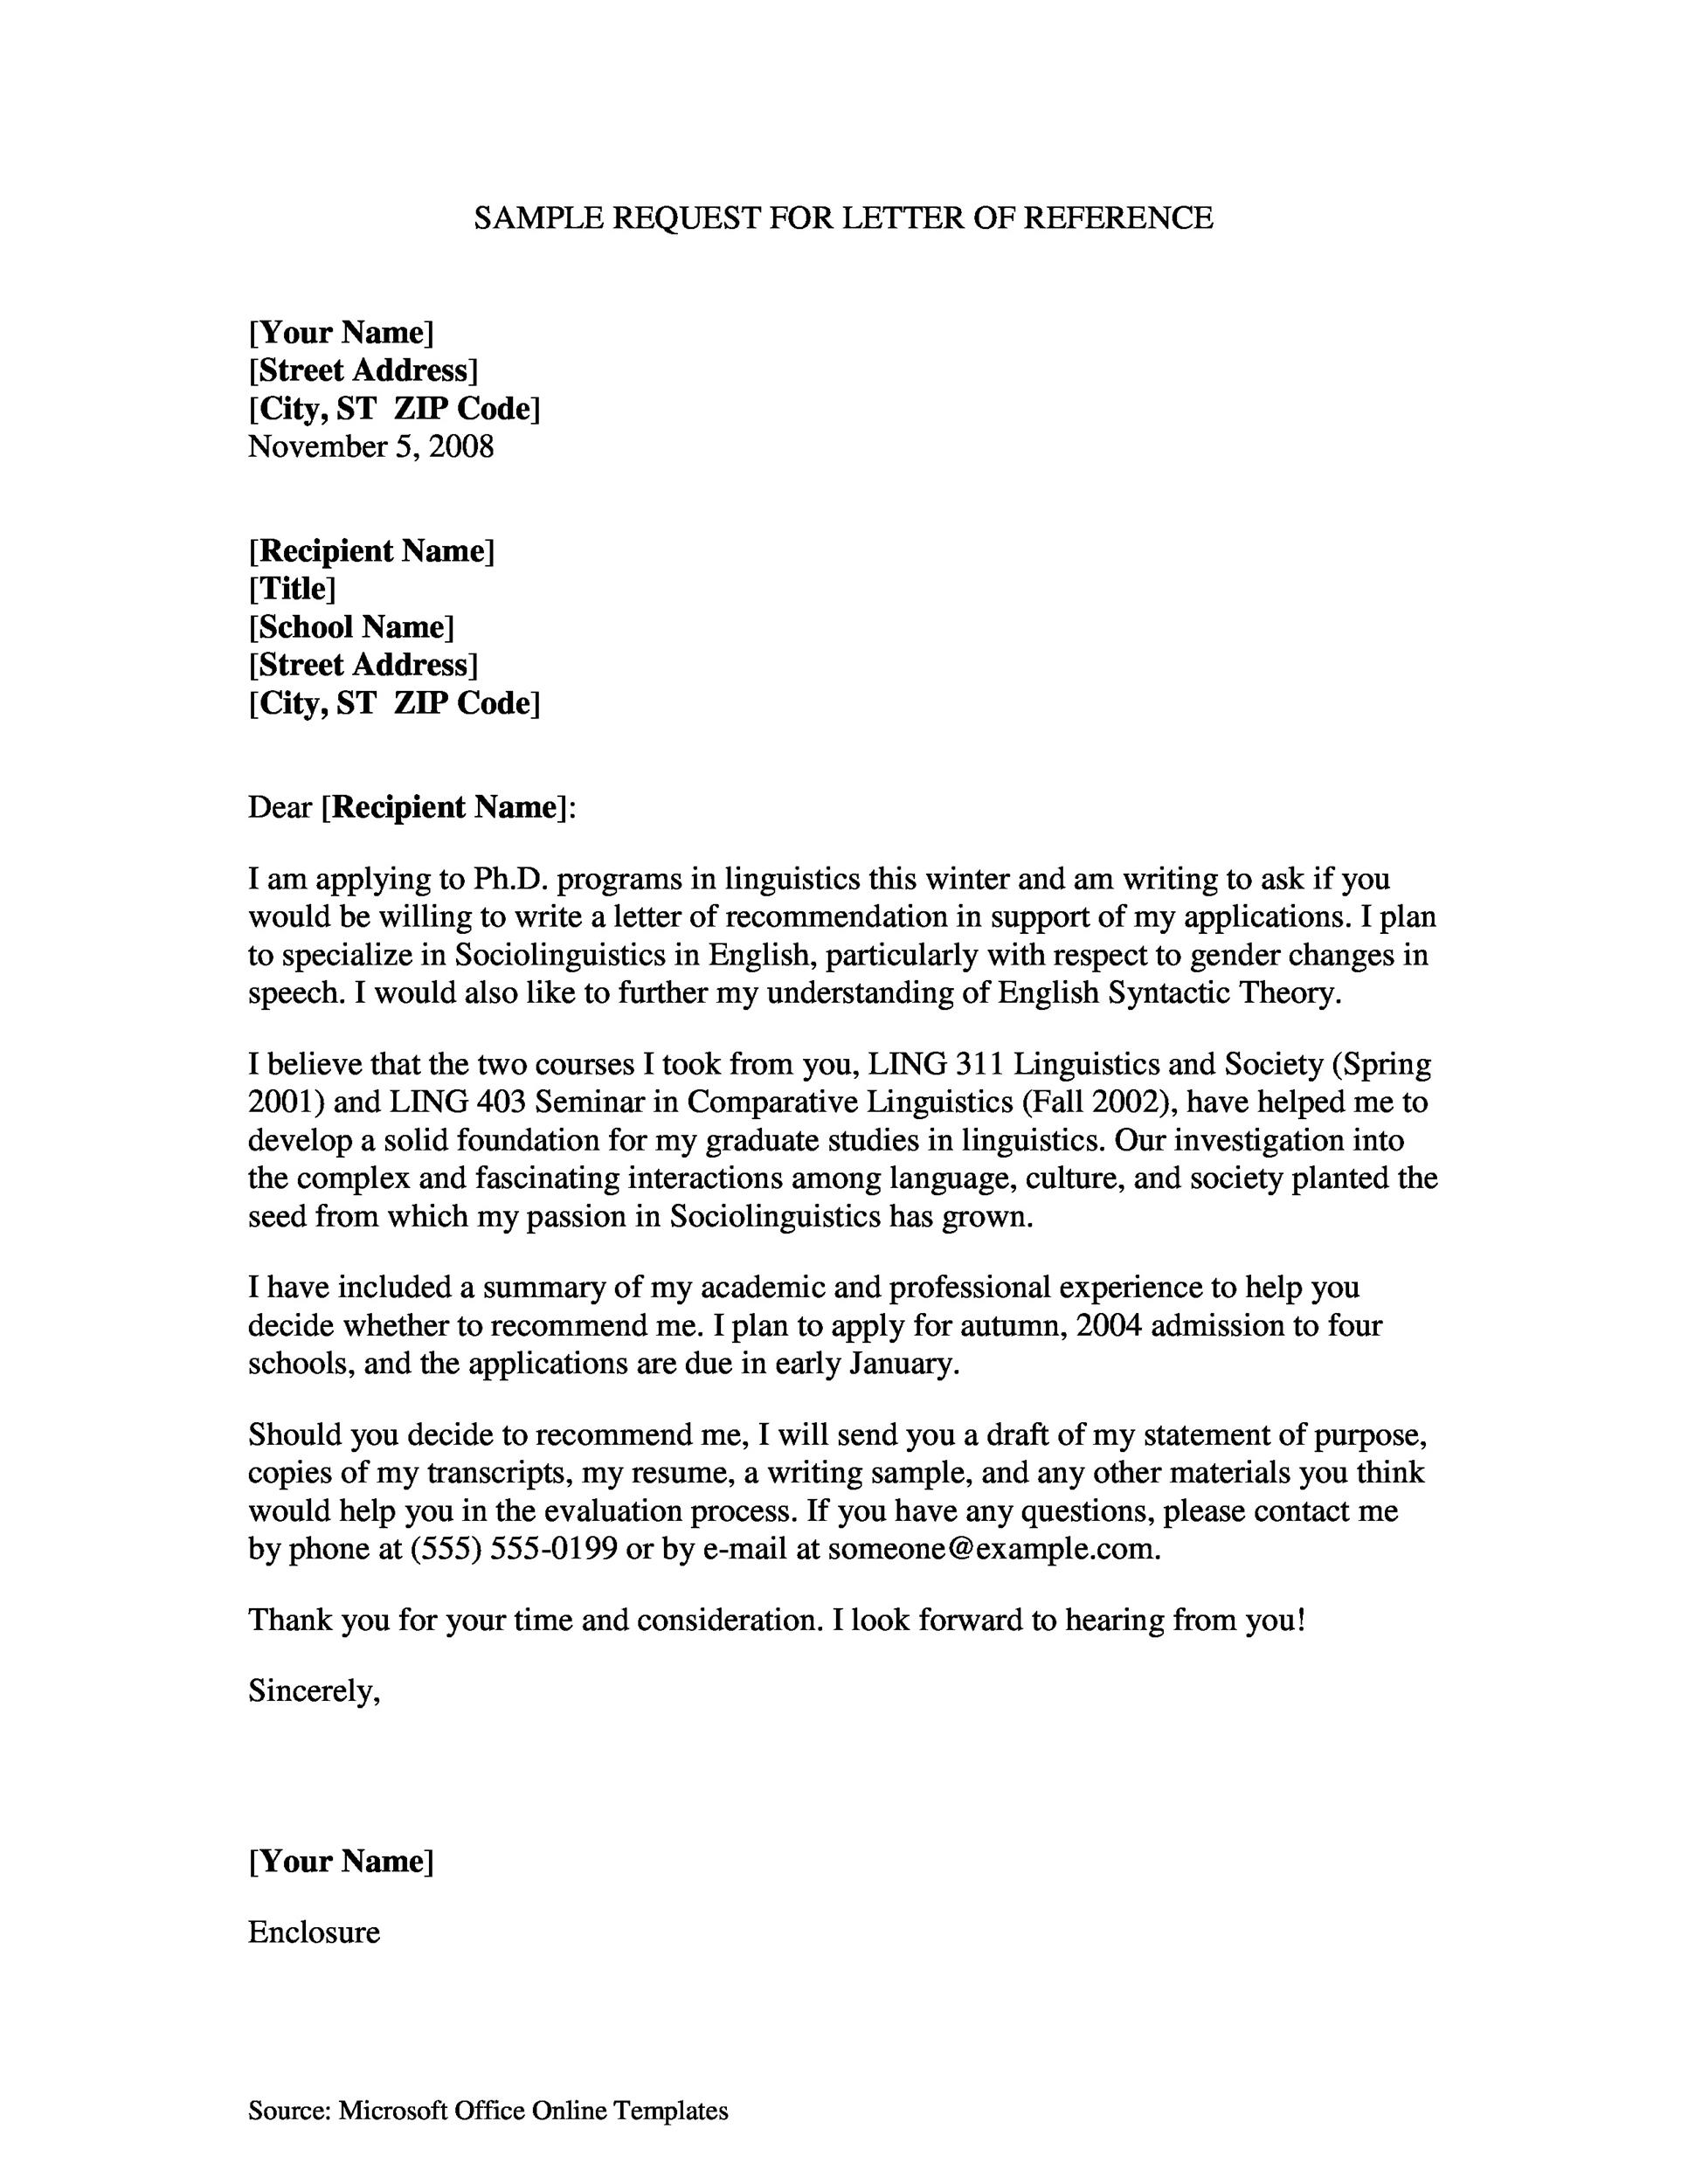 43 FREE Letter of Recommendation Templates Samples – Microsoft Letter of Recommendation Template